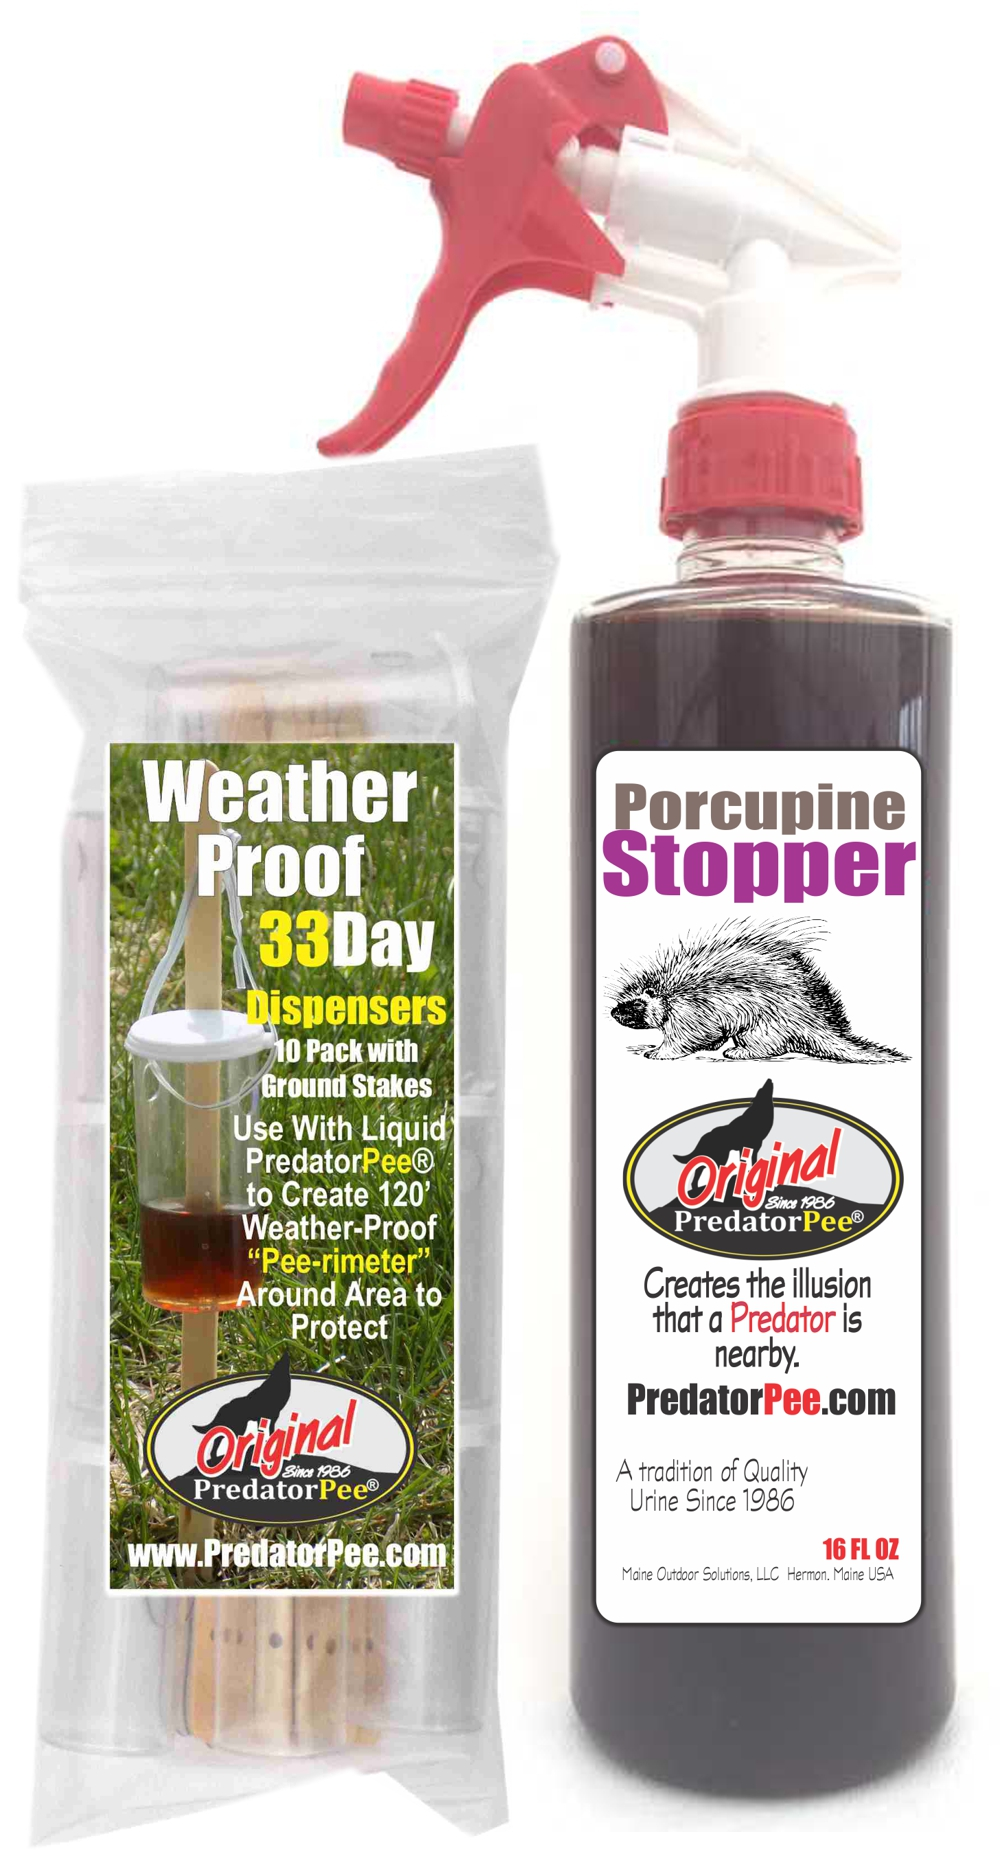 PorcupineStopper 16 oz - Dispenser SUPER SAVER COMBO Size & Fit Guide